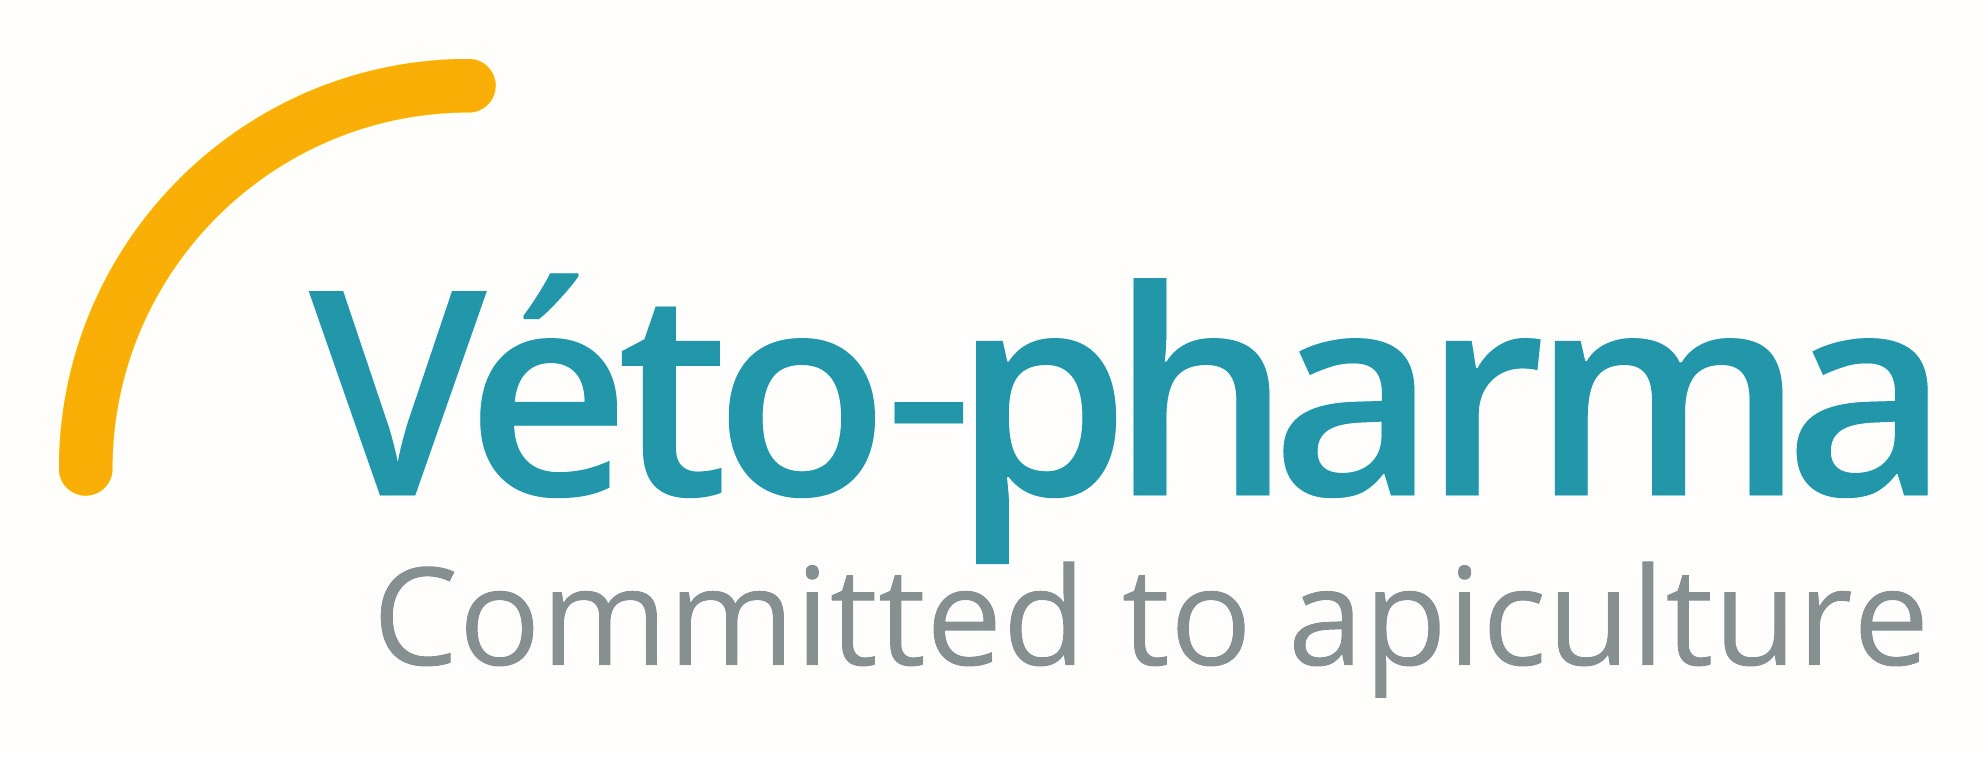 CATCH THE BUZZ – Véto-pharma distributes ApiLifeVar, a natural thymol-based product in the U.S.